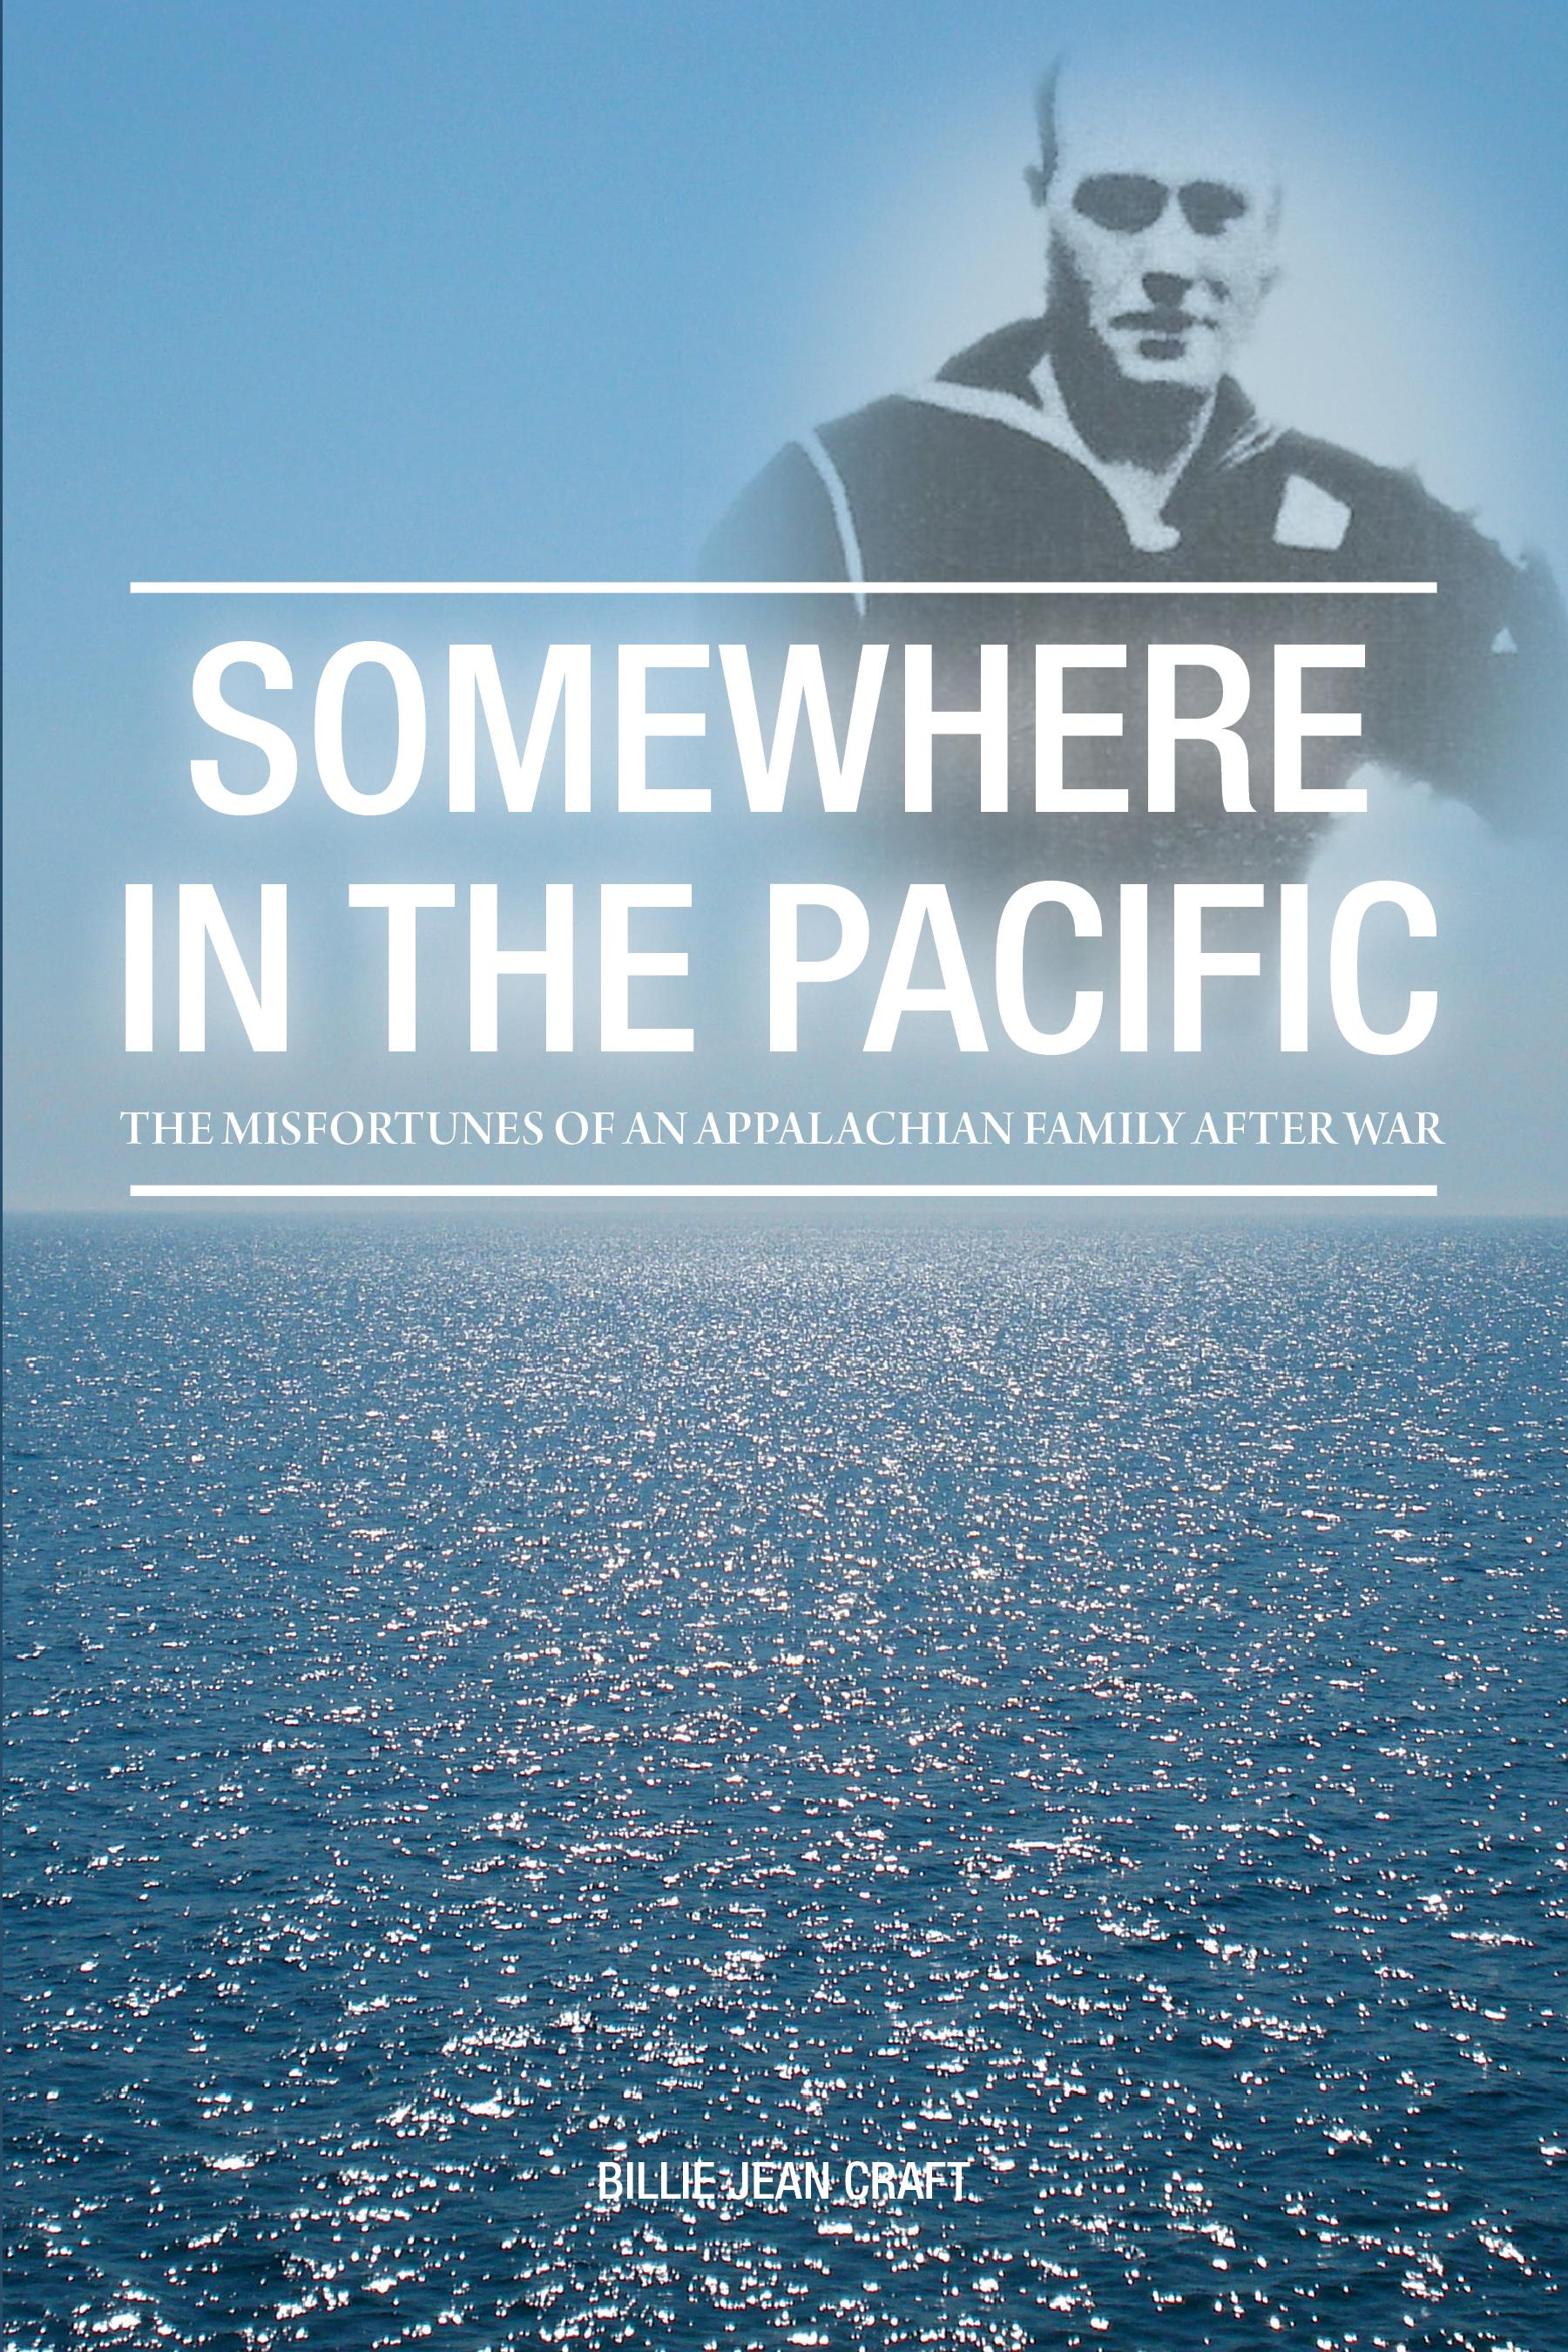 Somewhere in the Pacific: The Misfortunes of an Appalachian Family After War